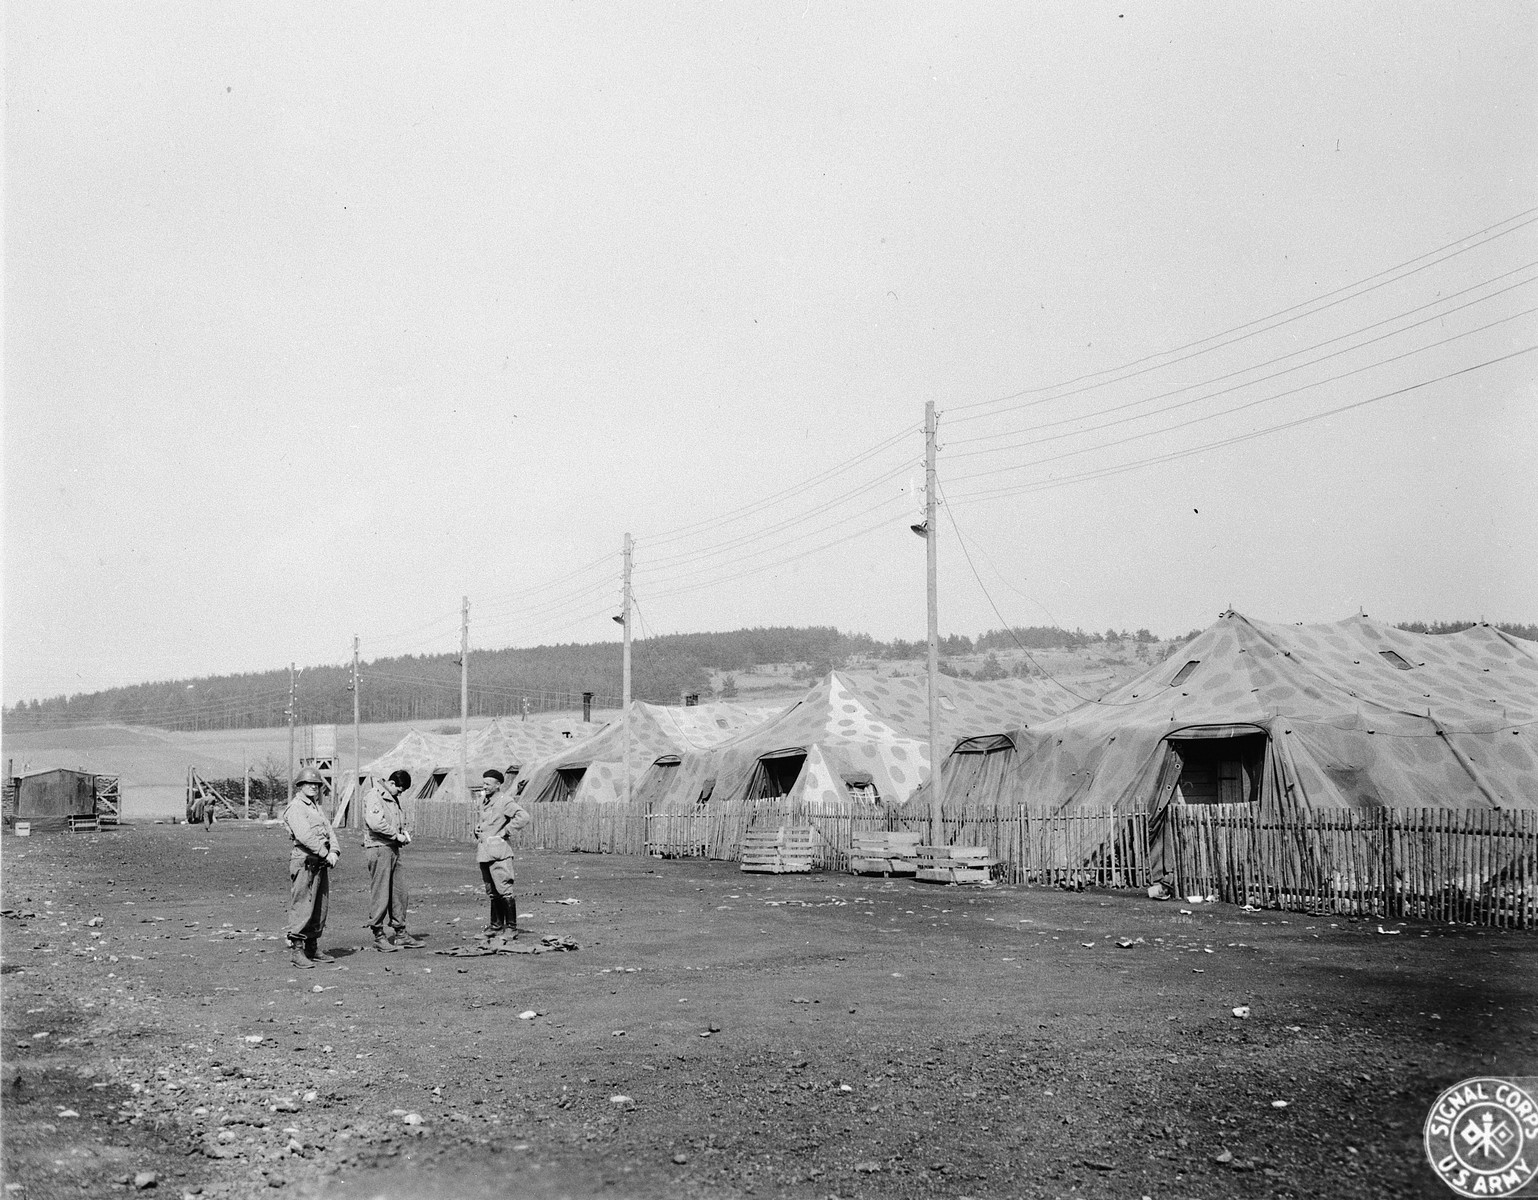 A view of the prisoners' tents at Arnstadt concentration camp.